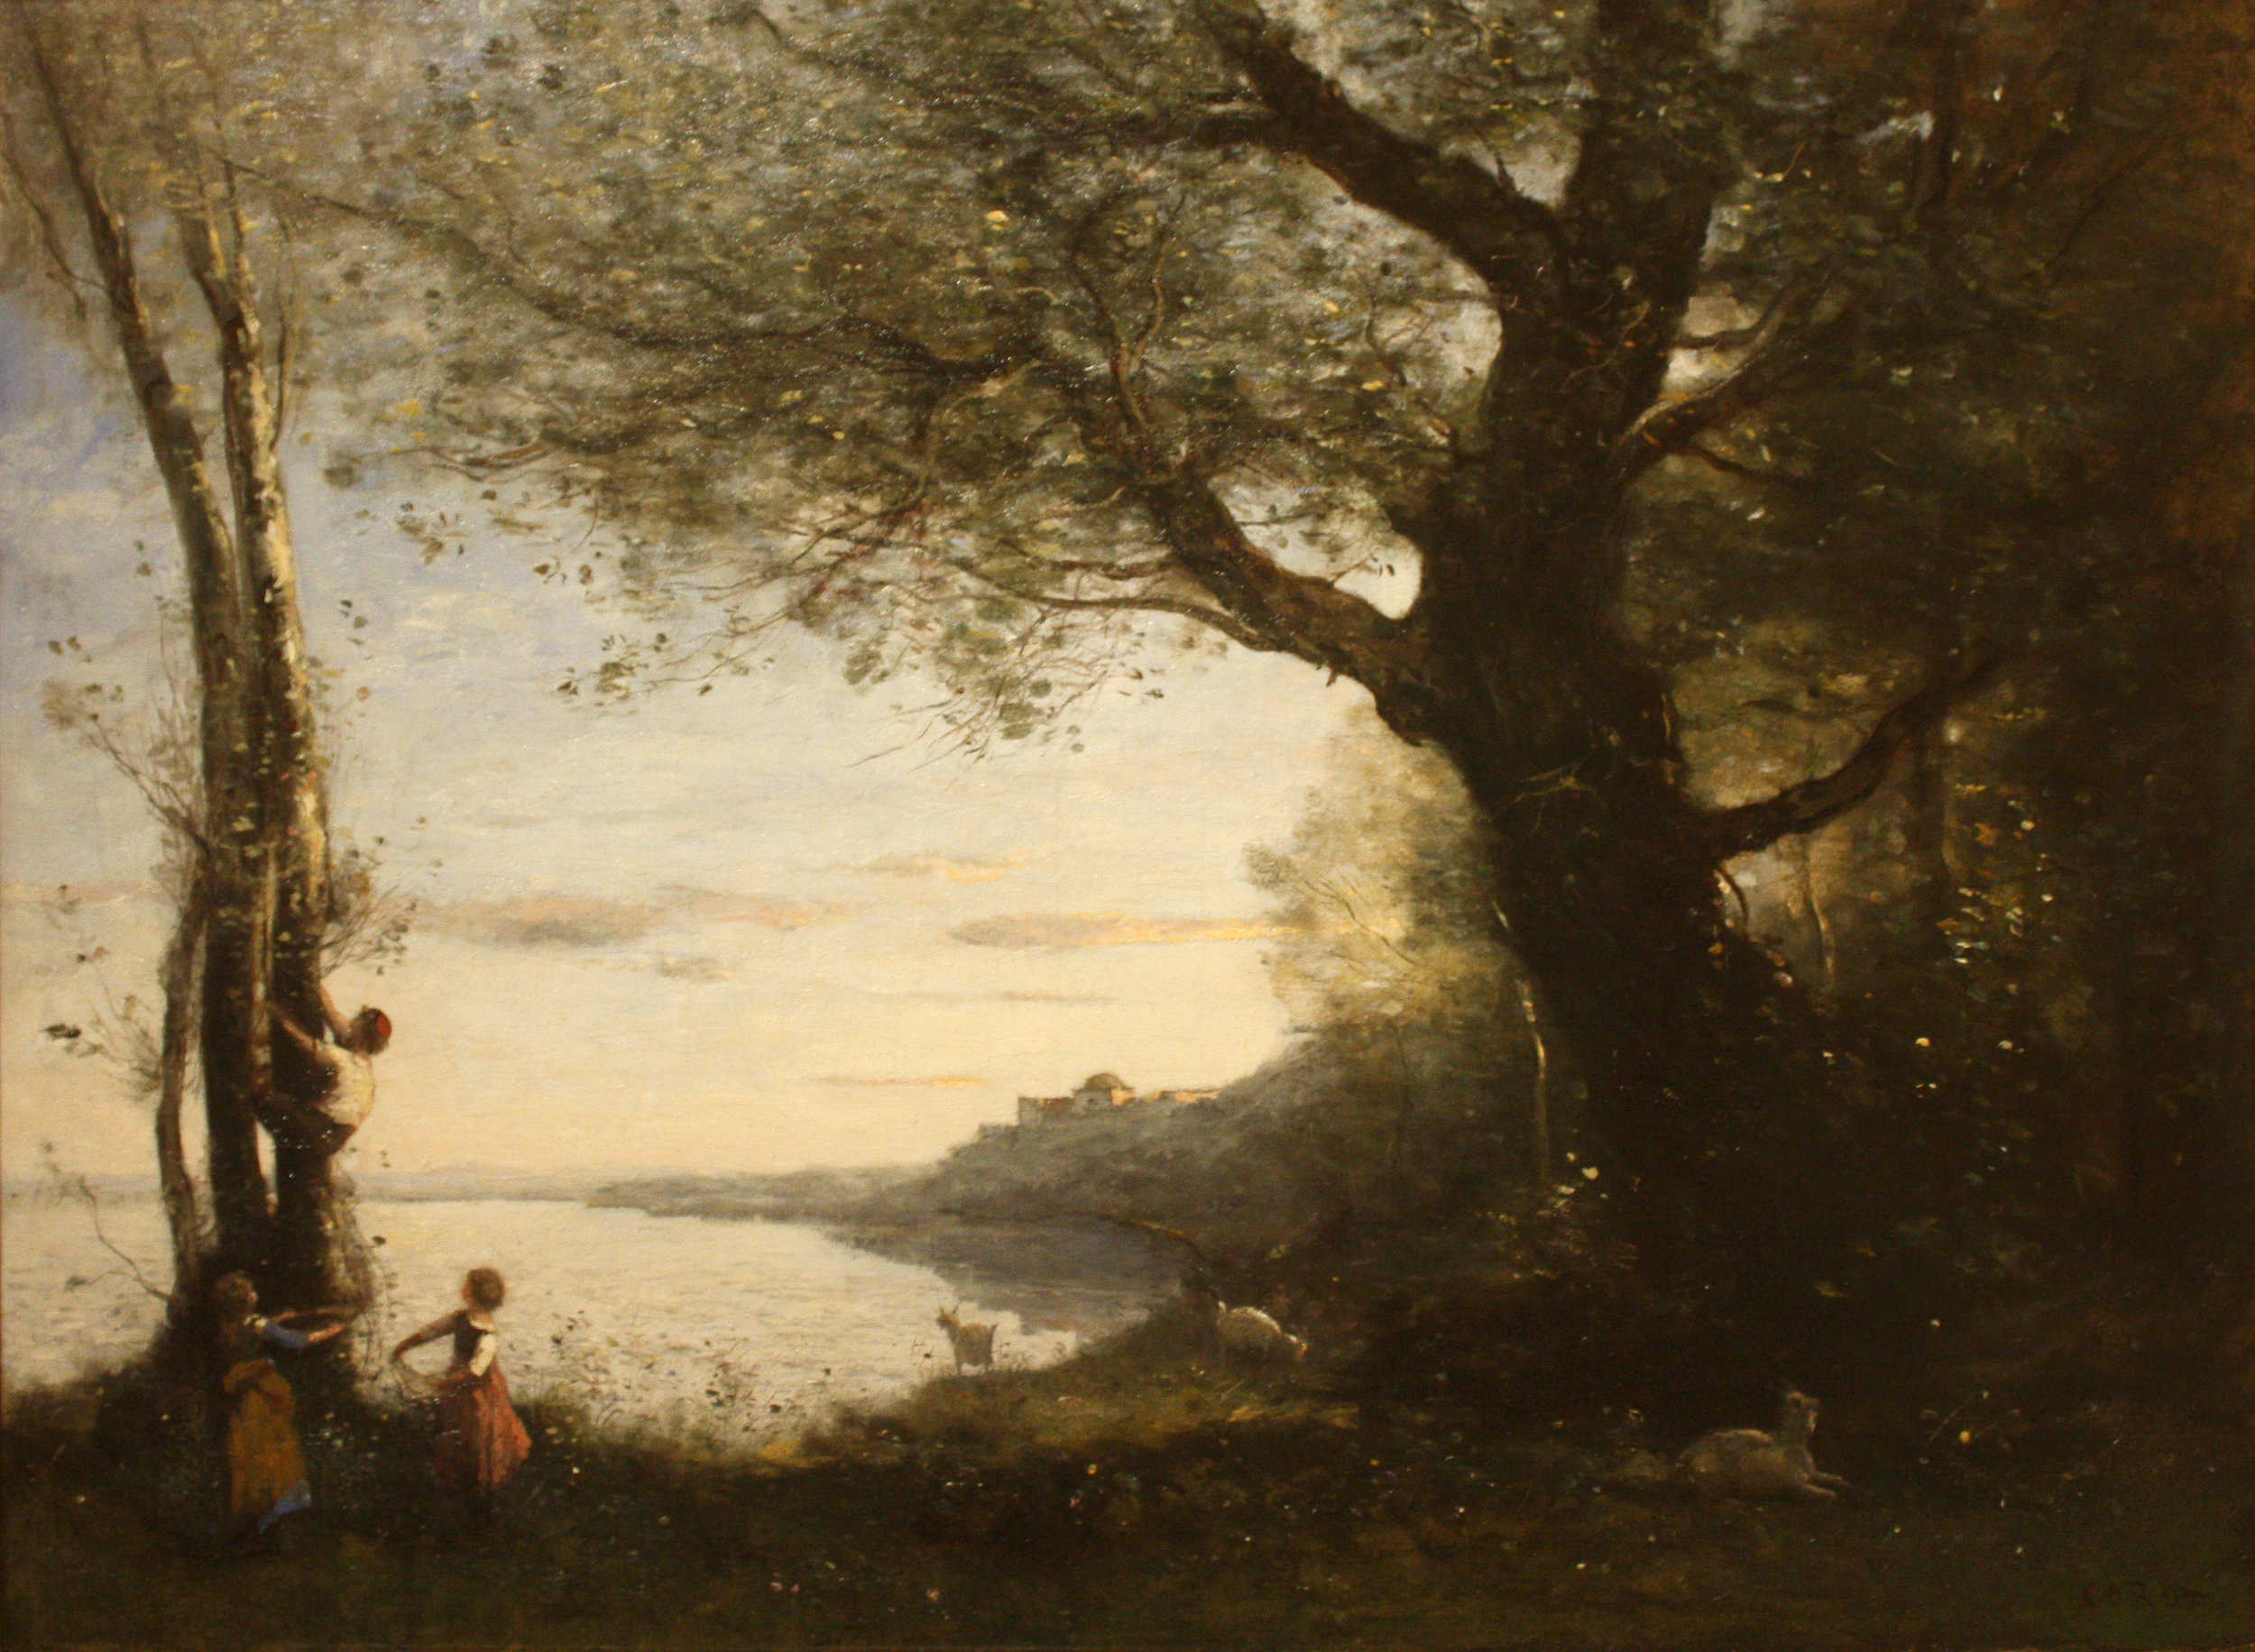 The Little Bird Nesters,  Jean-Baptiste-Camille Corot (1873-1874), { PD-US }